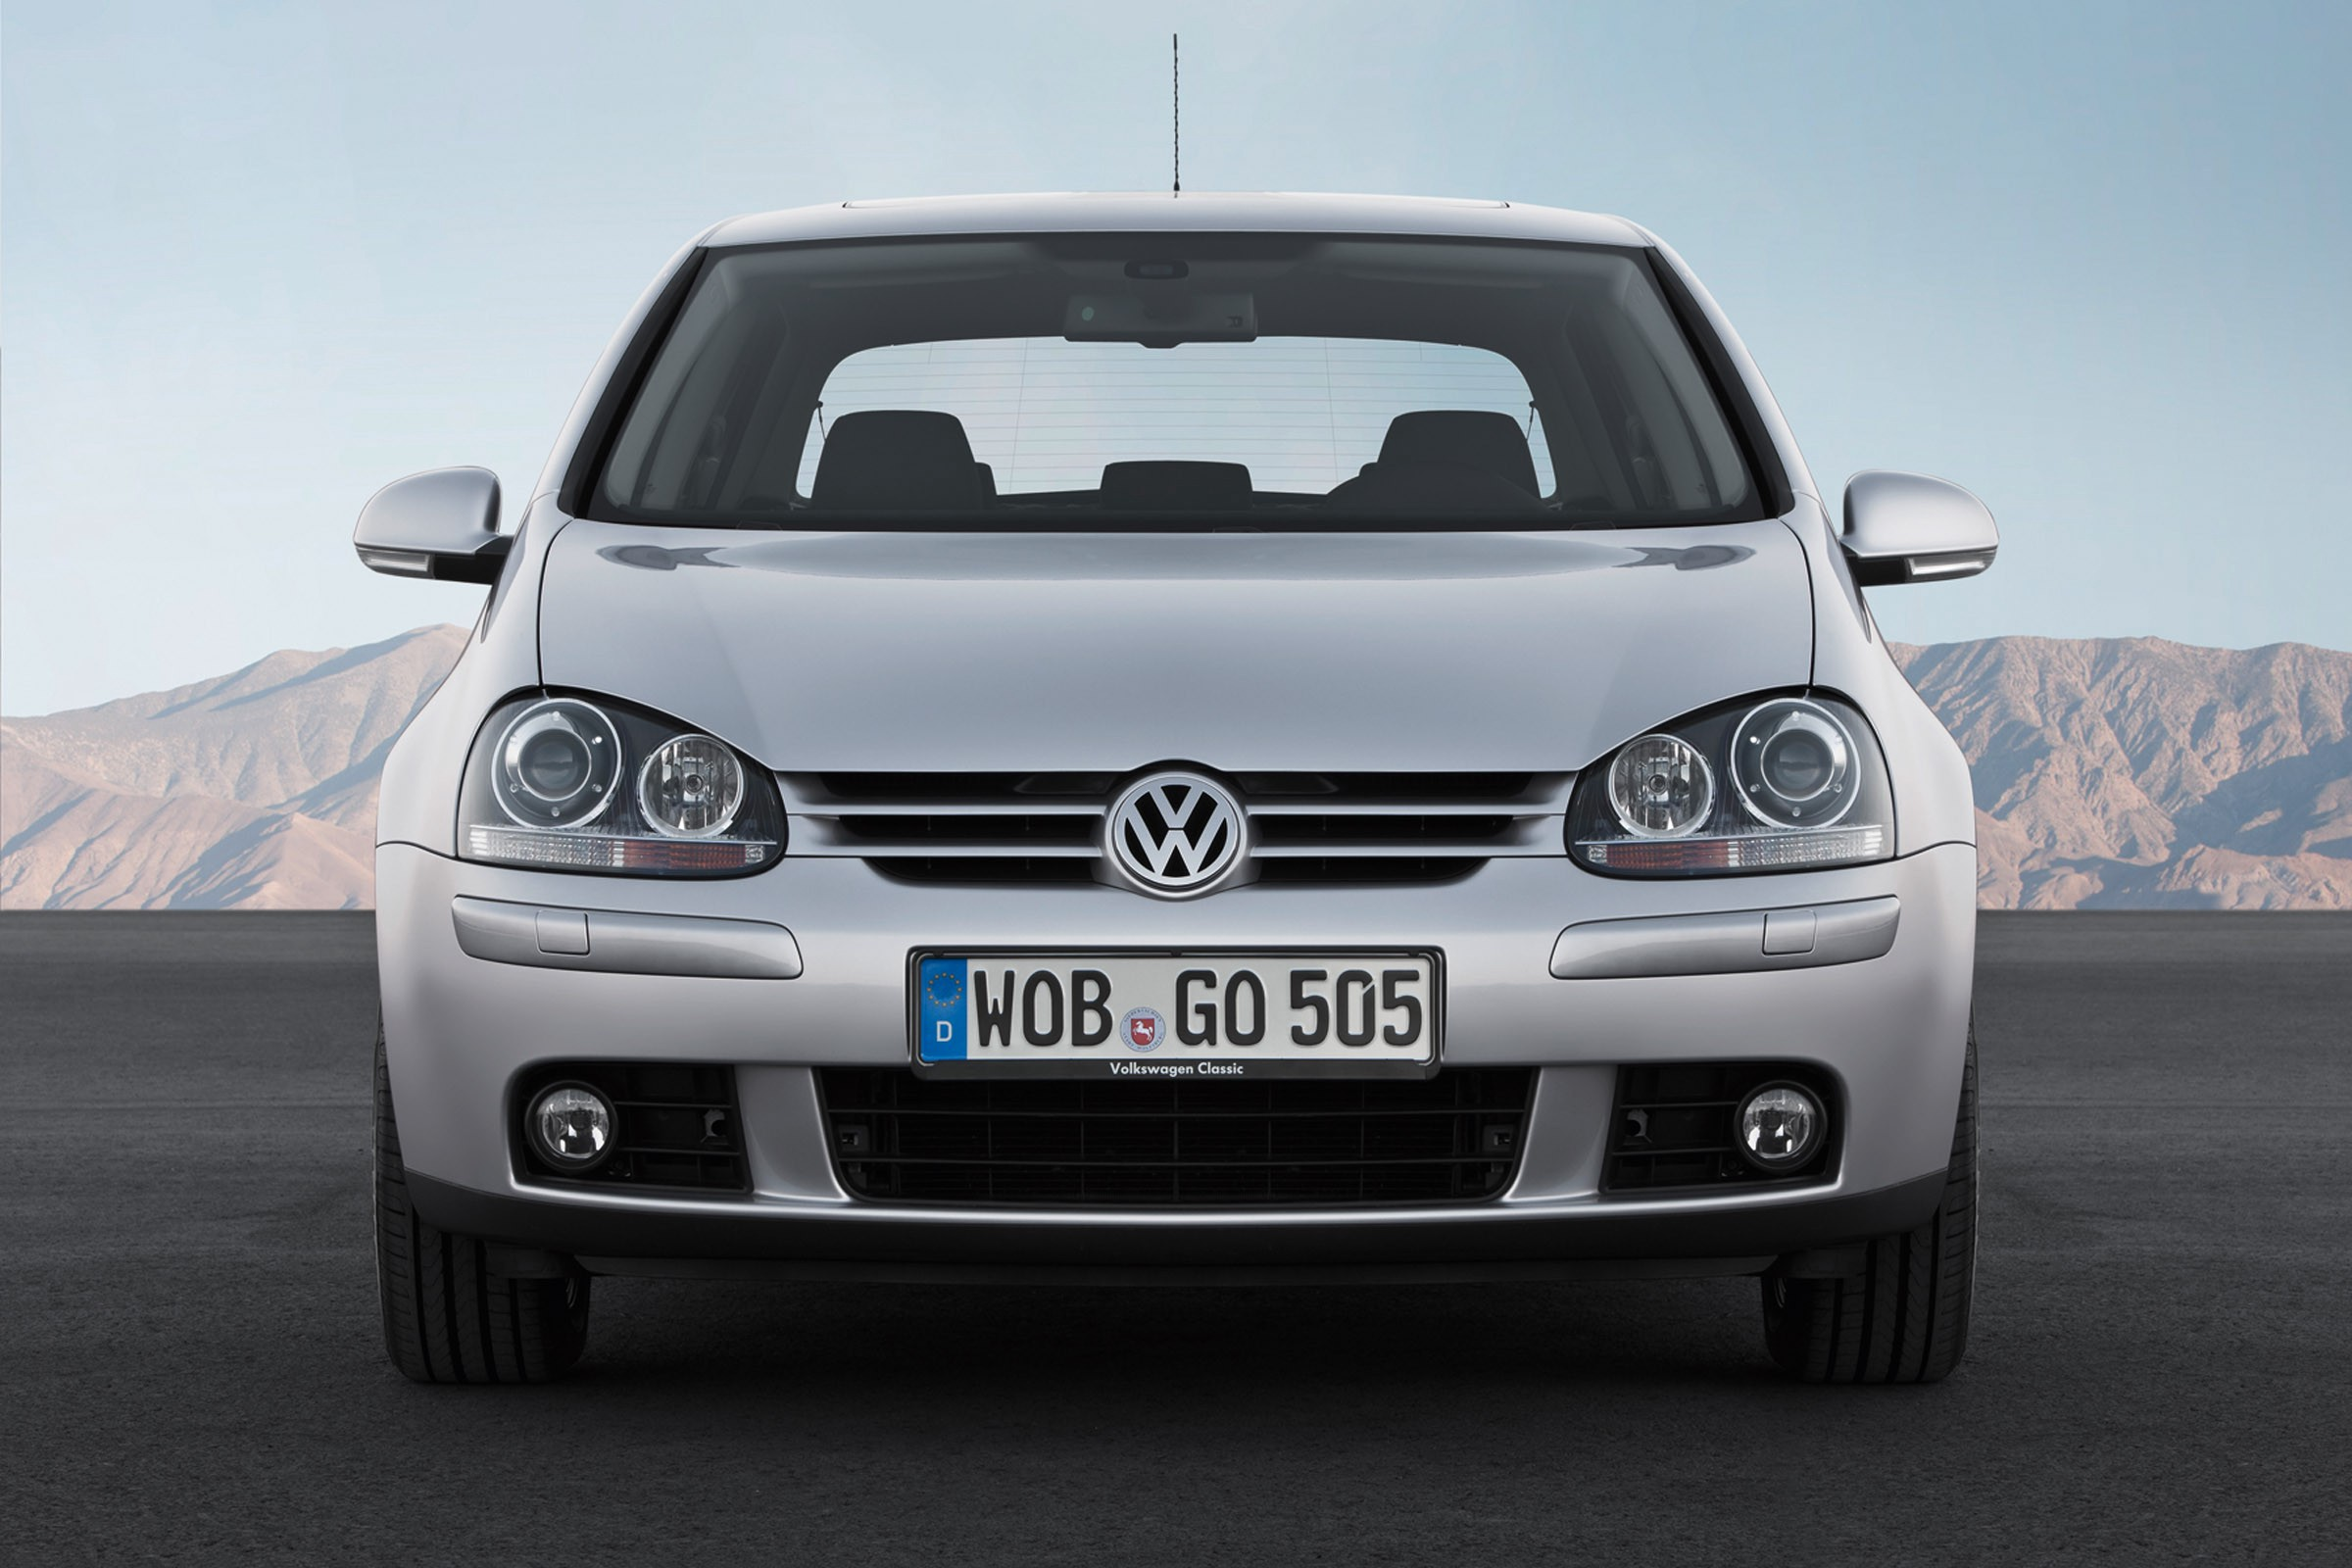 Cool Tweaks for Your VW Golf/Jetta V Mk5 and Passat B6